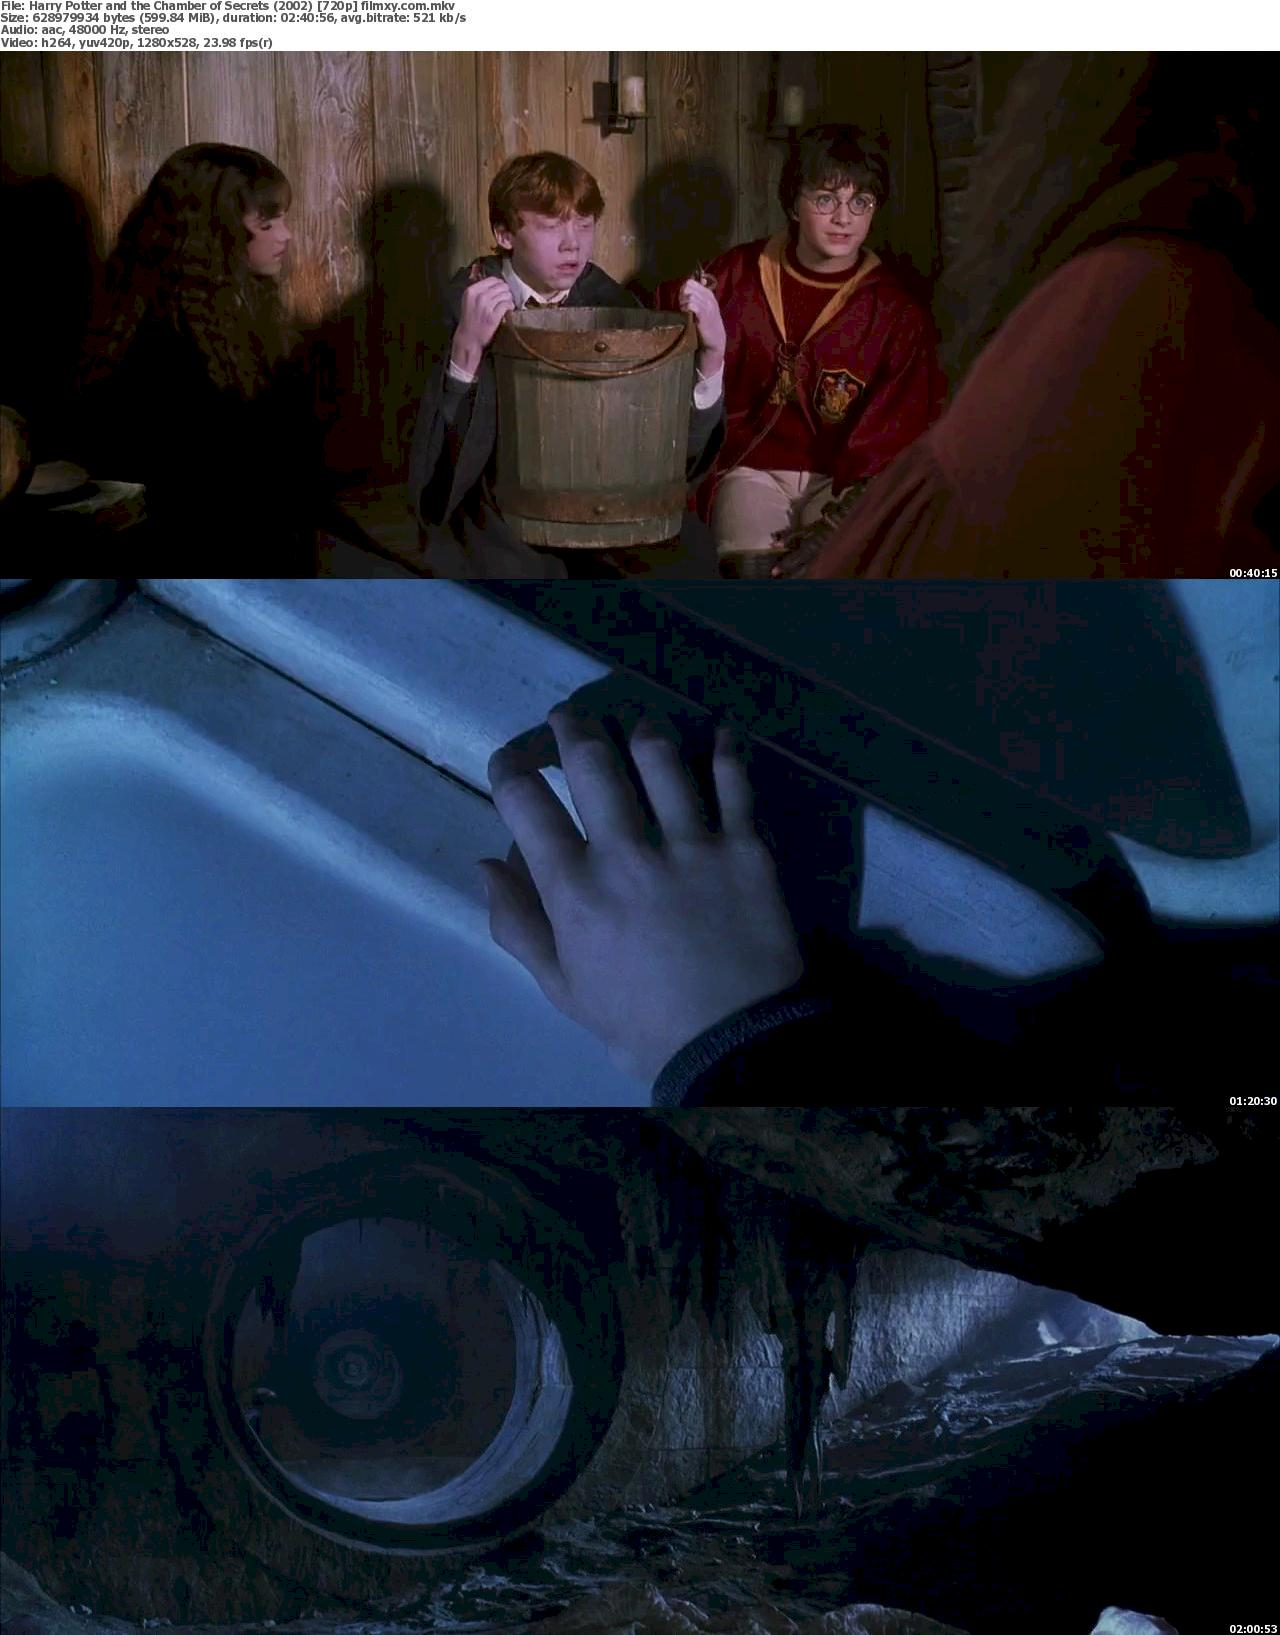 Harry Potter and the Chamber of Secrets (2002) 720p & 1080p Bluray Free Download 720p Screenshot